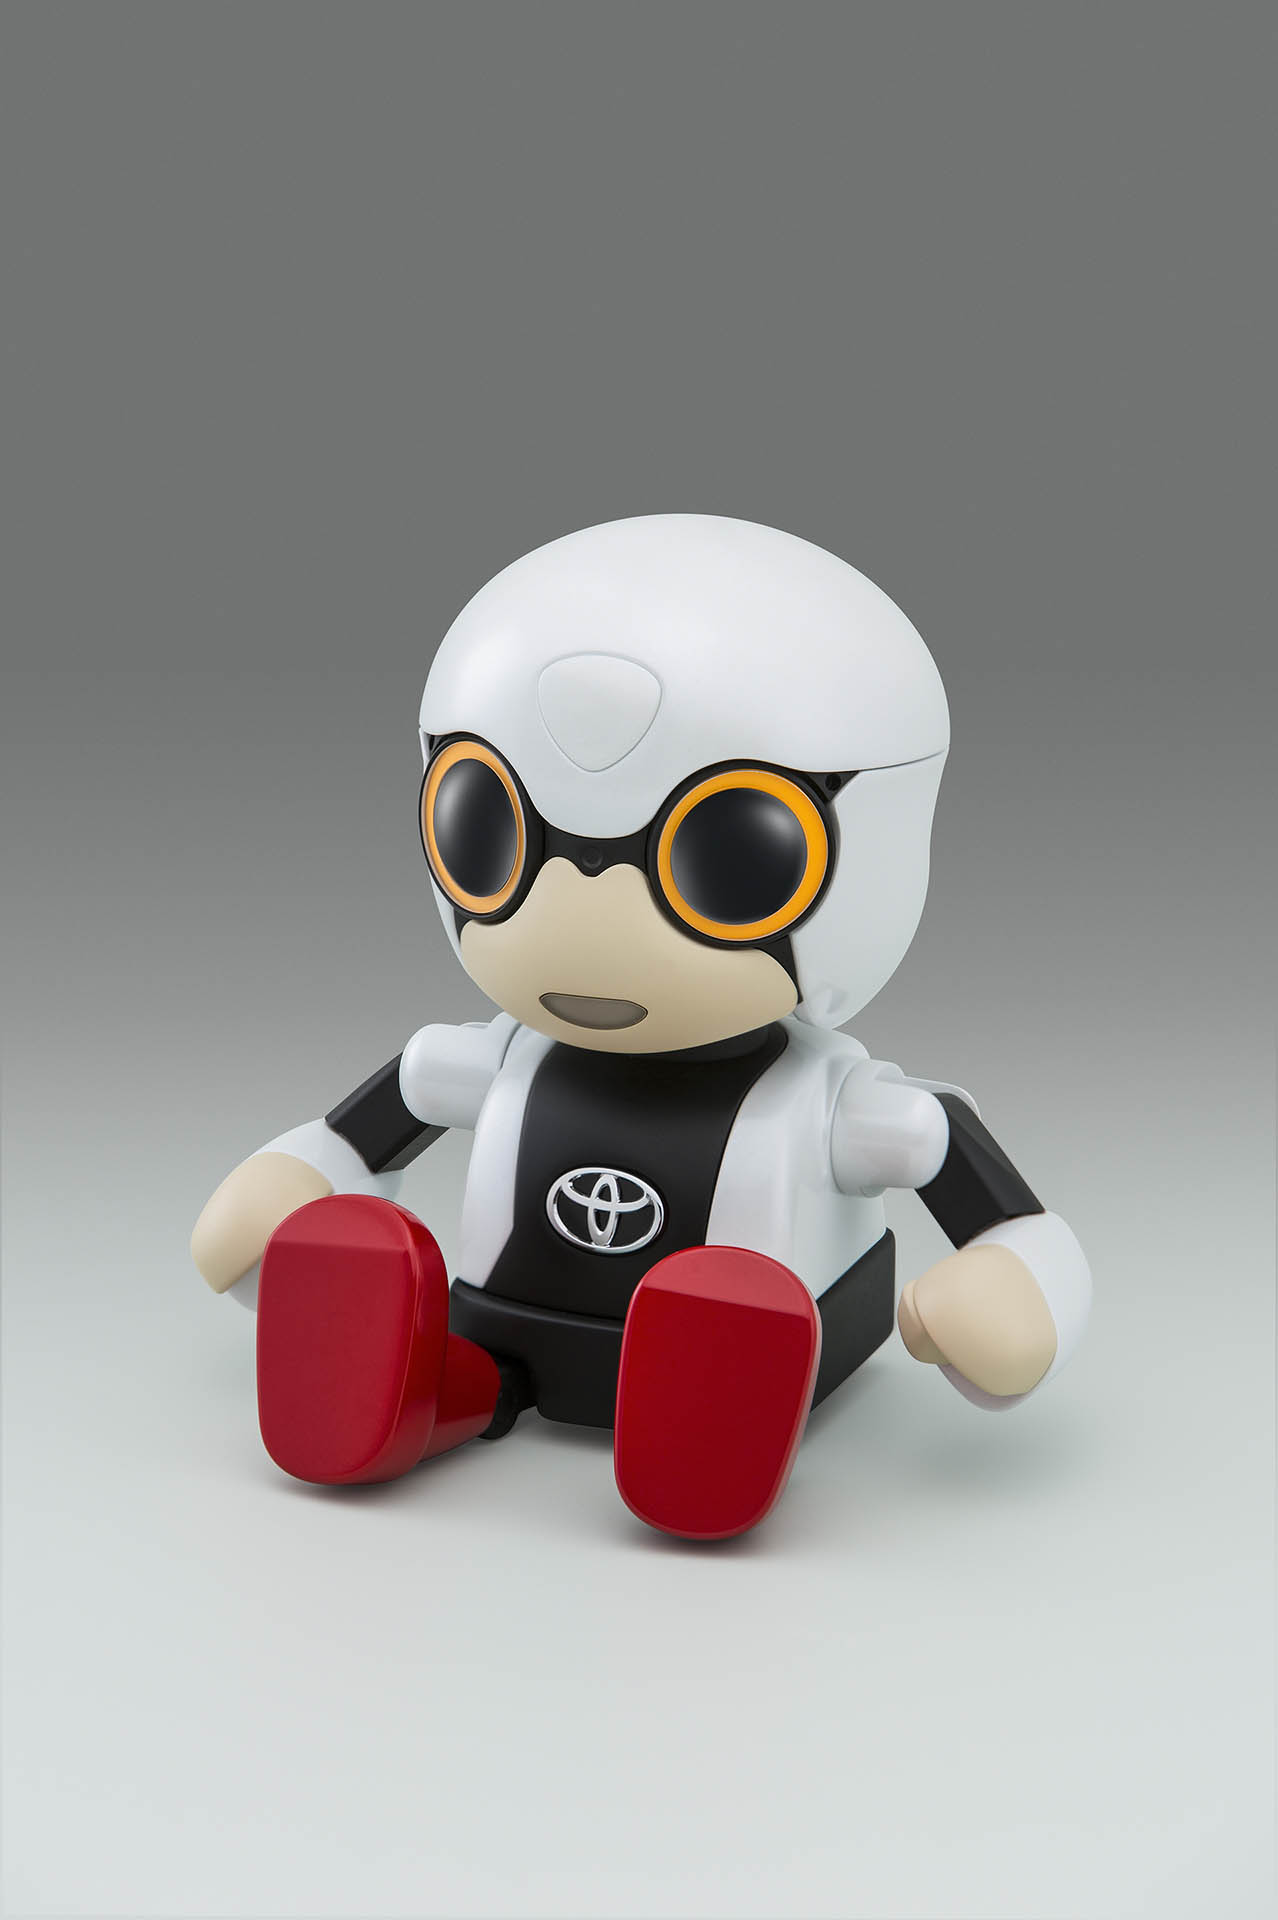 Toyota S Kirobo Mini Robot Offers Emotional Support To